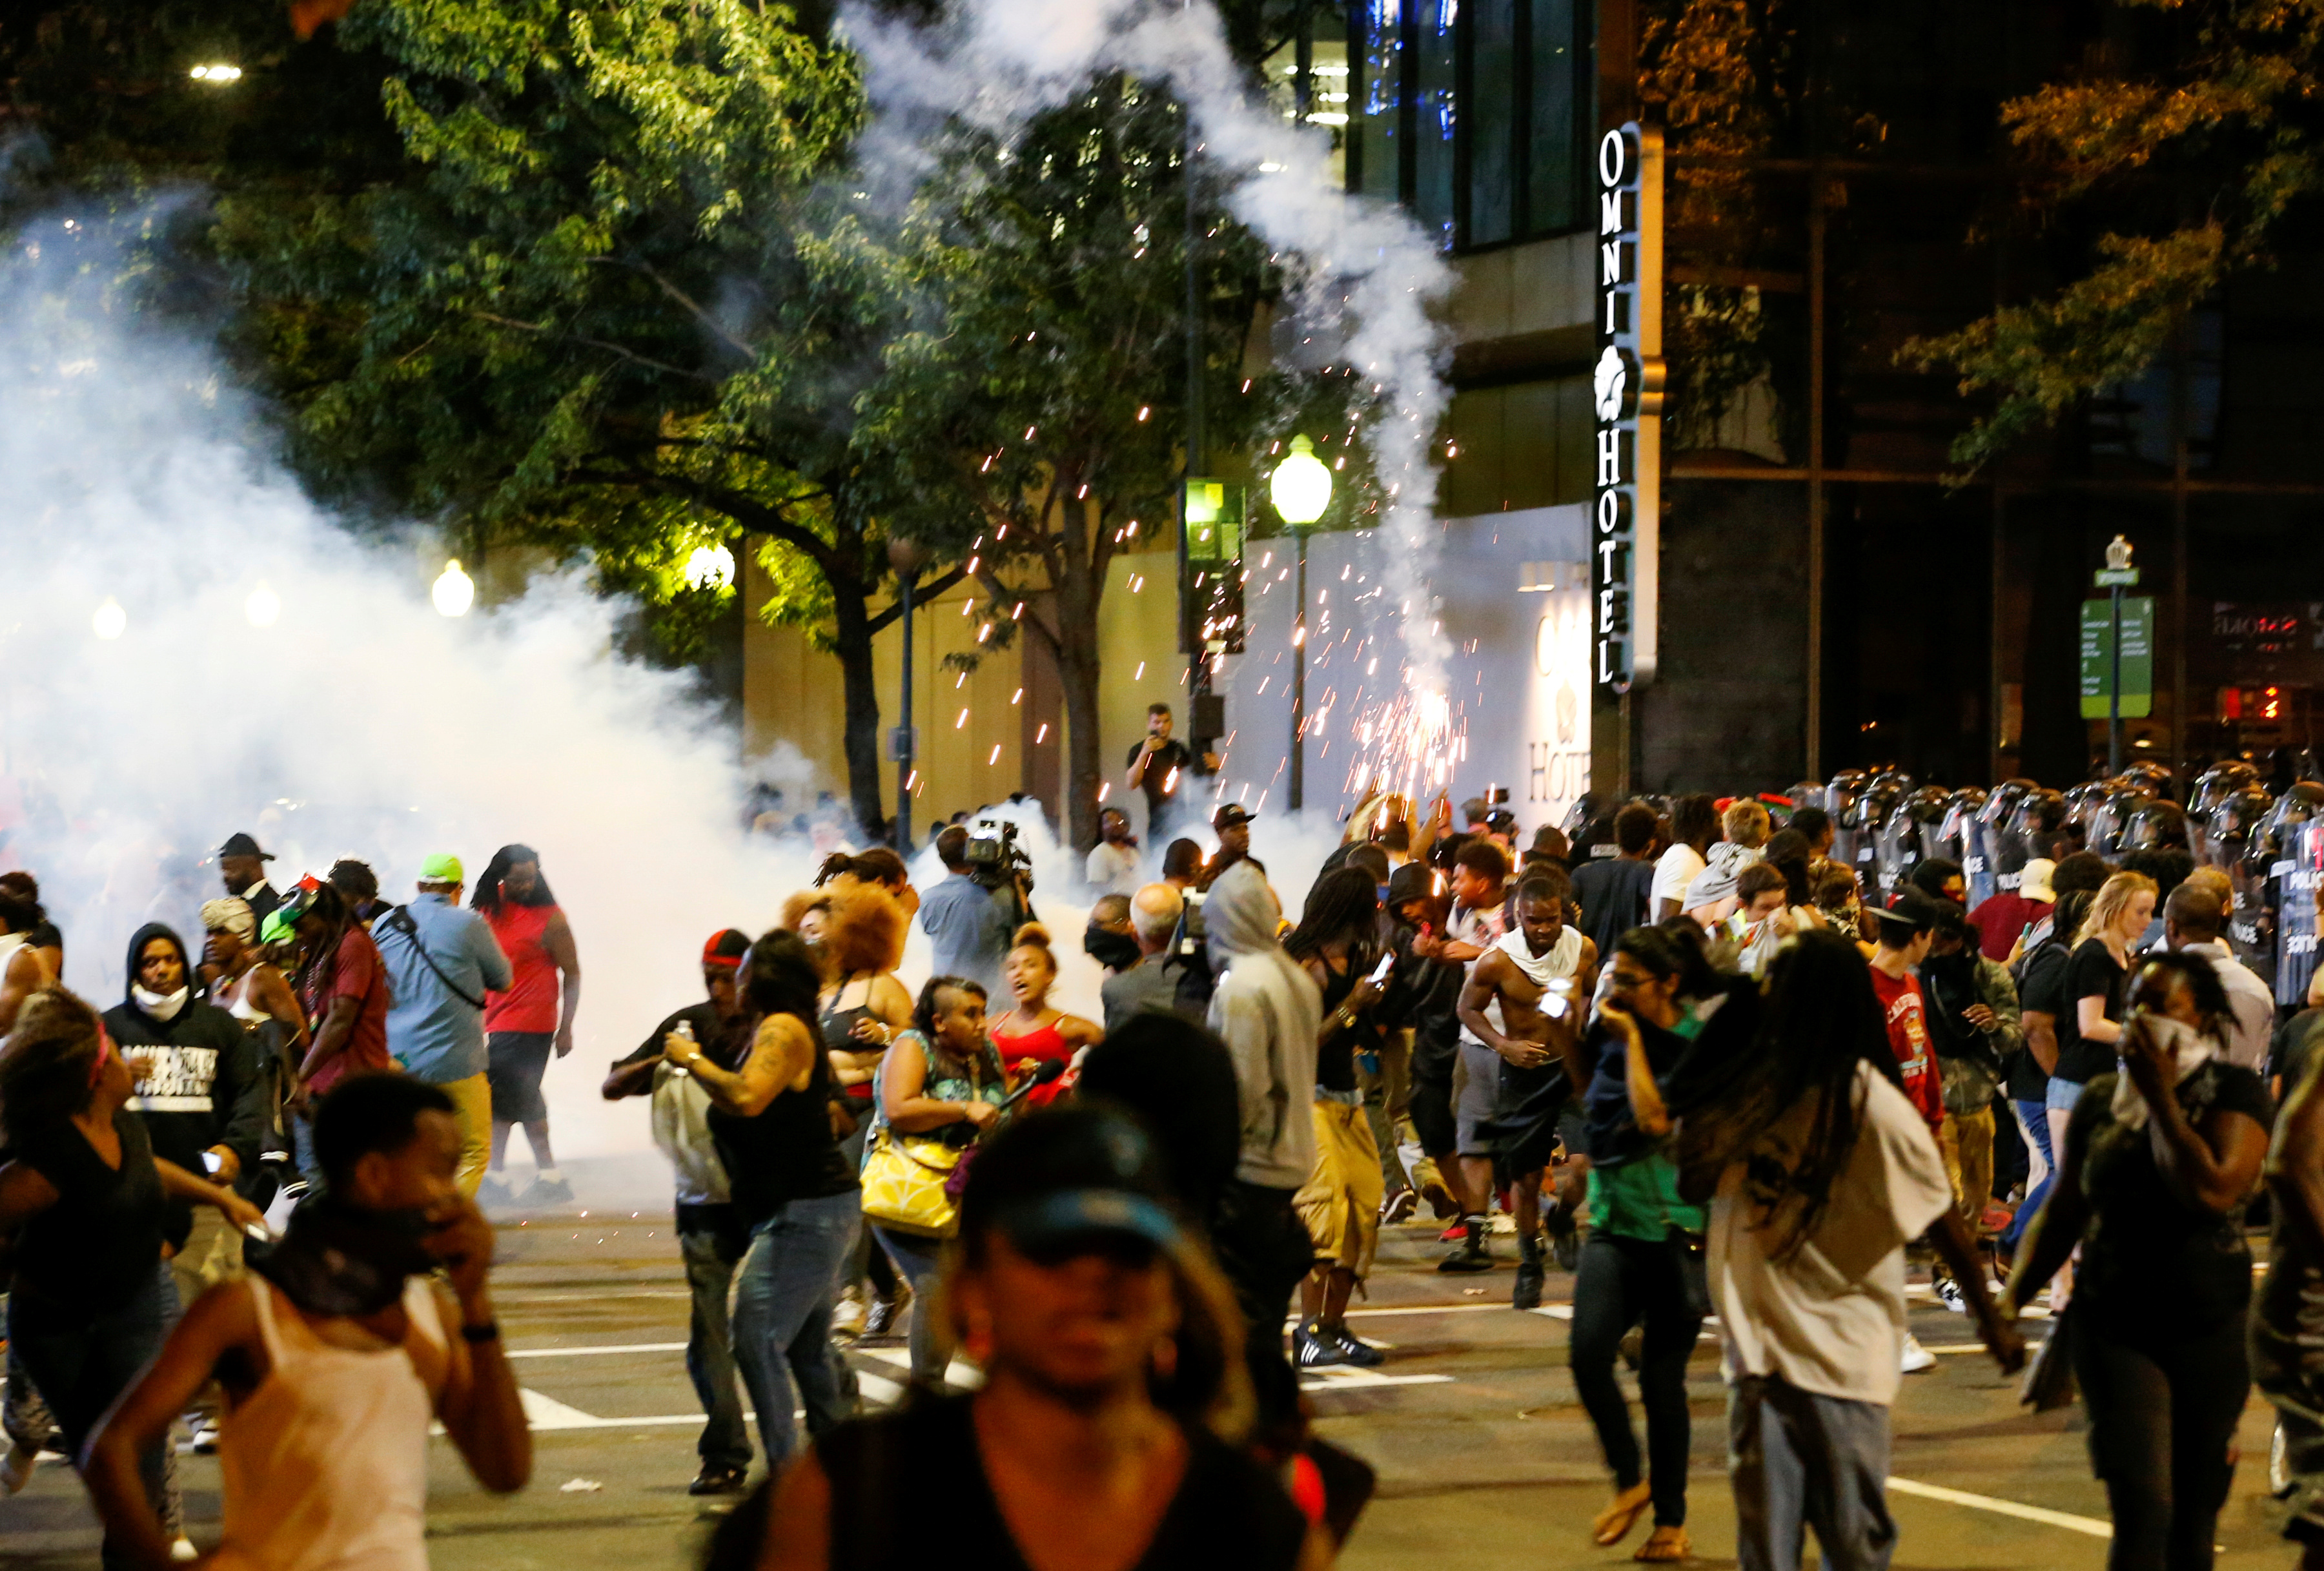 People run from flash-bang grenades in uptown Charlotte, NC during a protest of the police shooting of Keith Scott, in Charlotte, North Carolina, U.S. September 21, 2016. REUTERS/Jason Miczek/File Photo